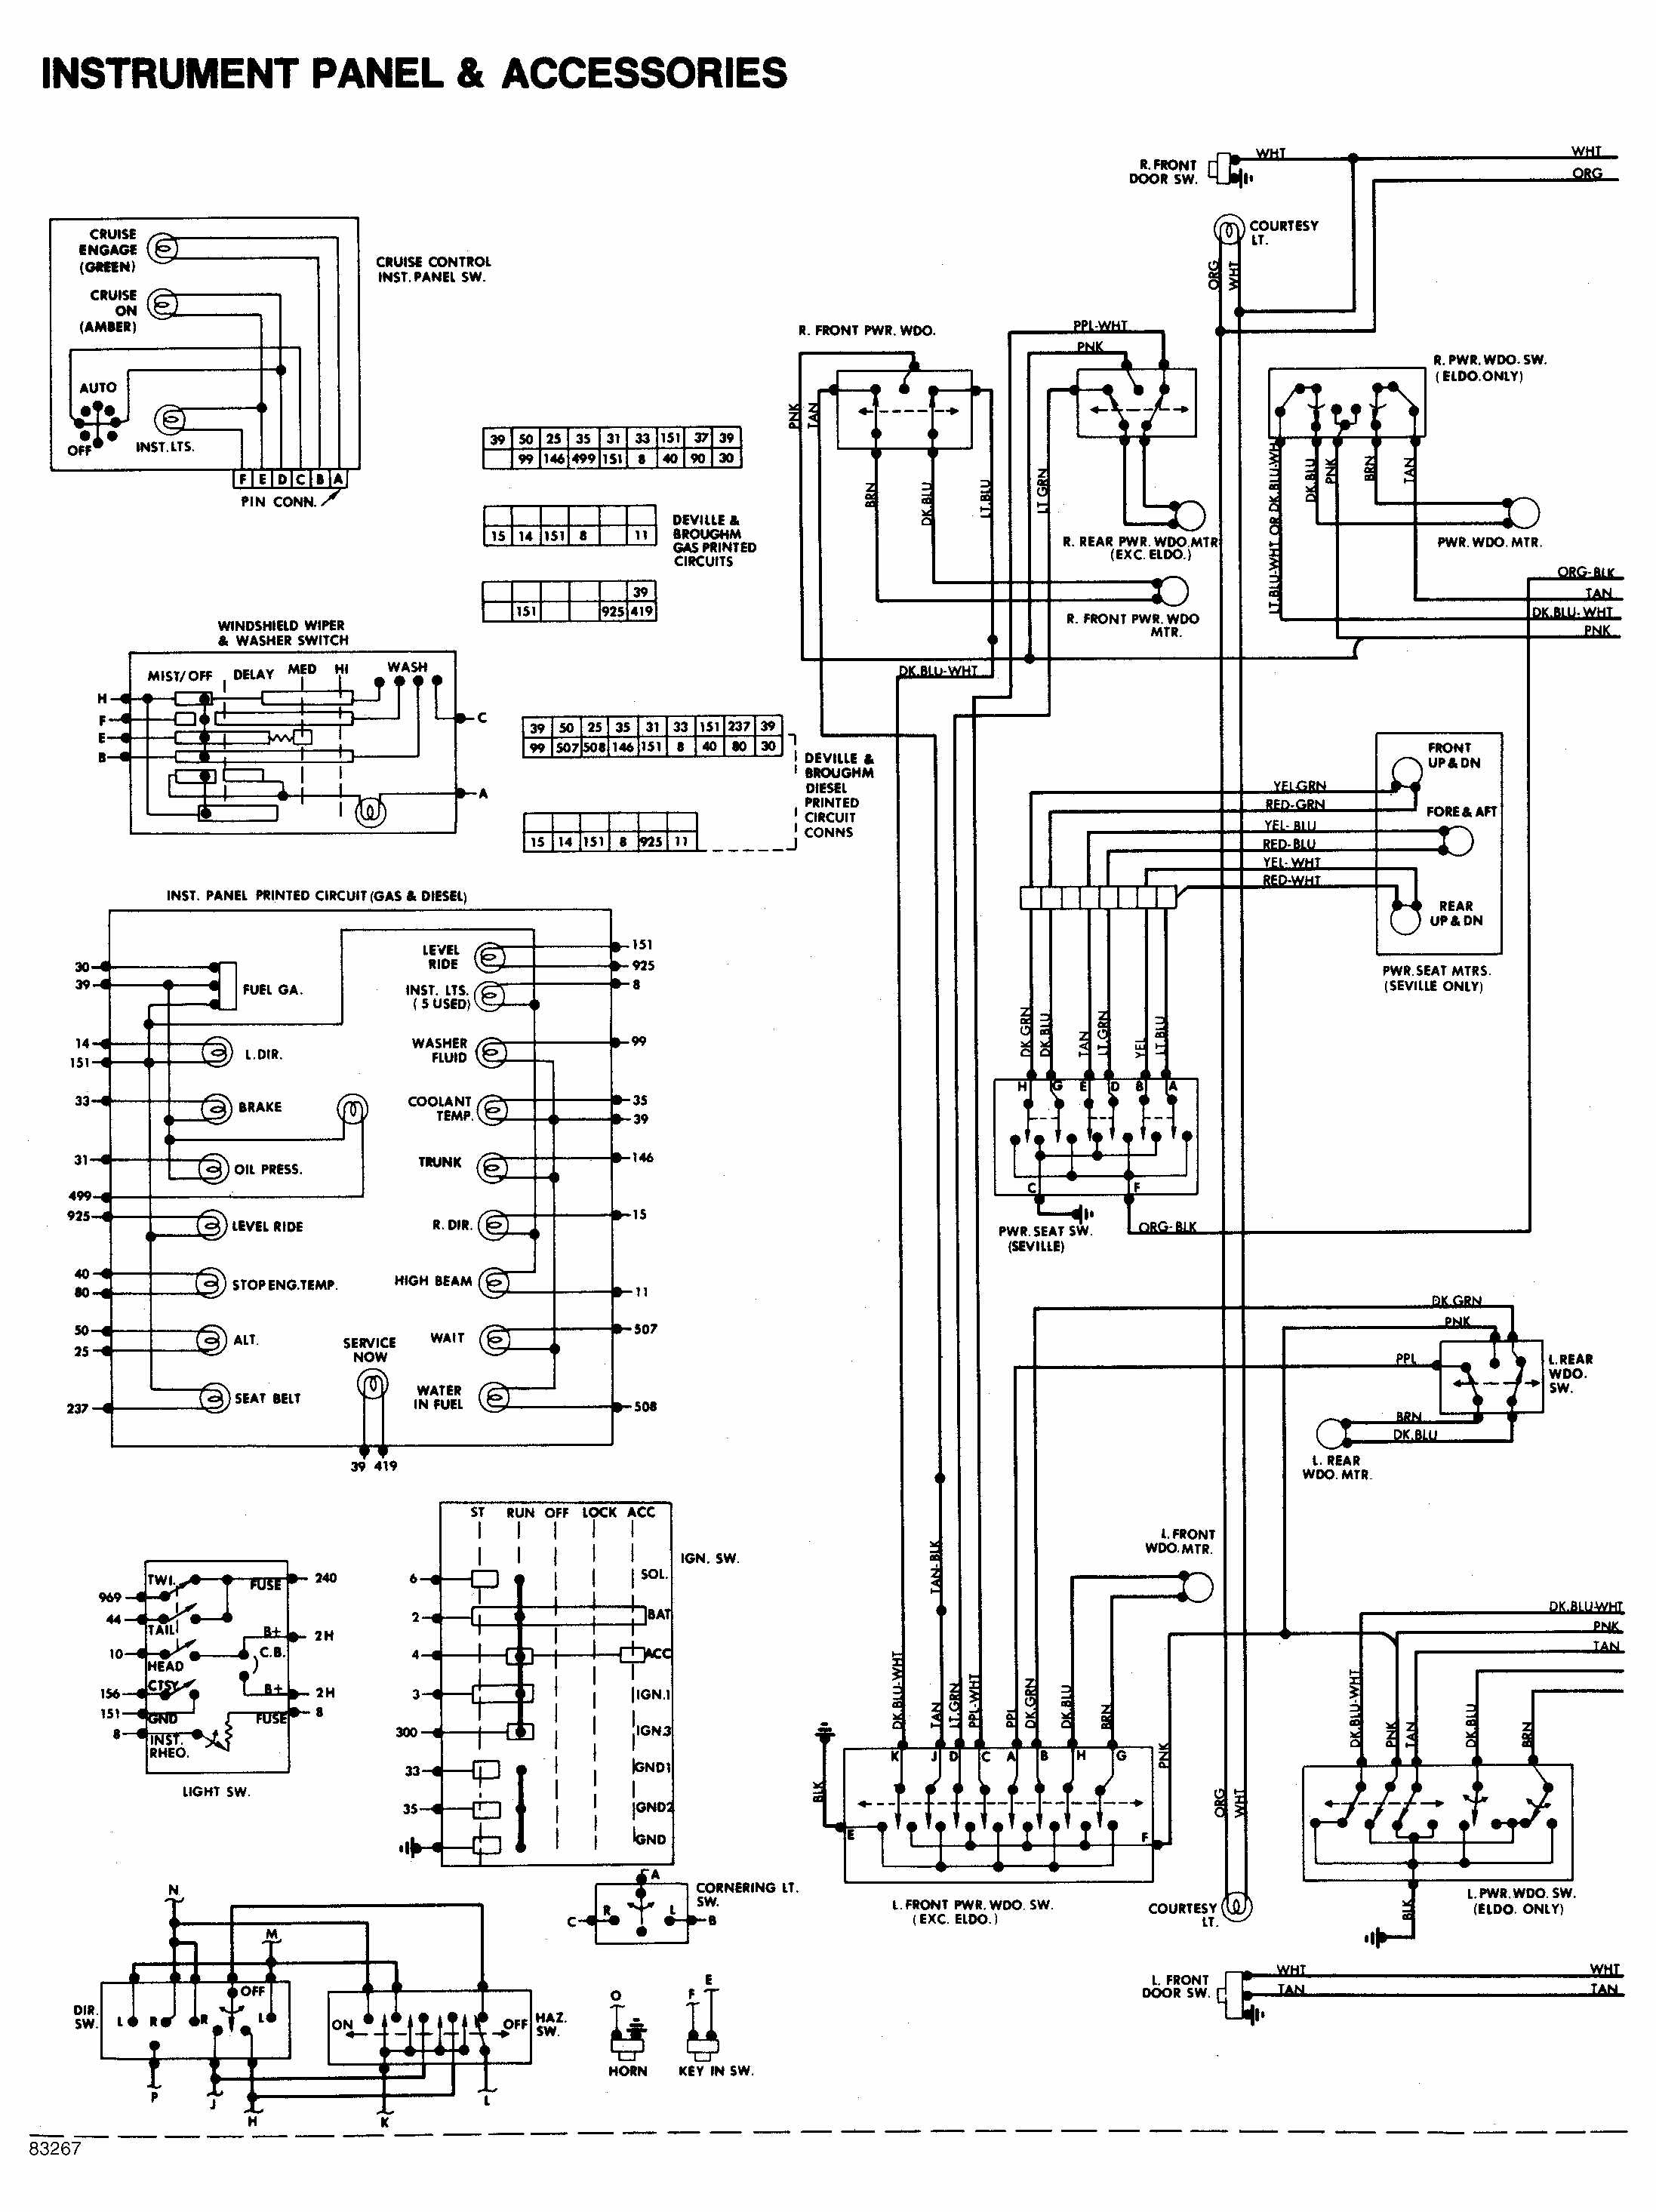 Wiring Diagram For A Buick Skylark Colum Light Switch